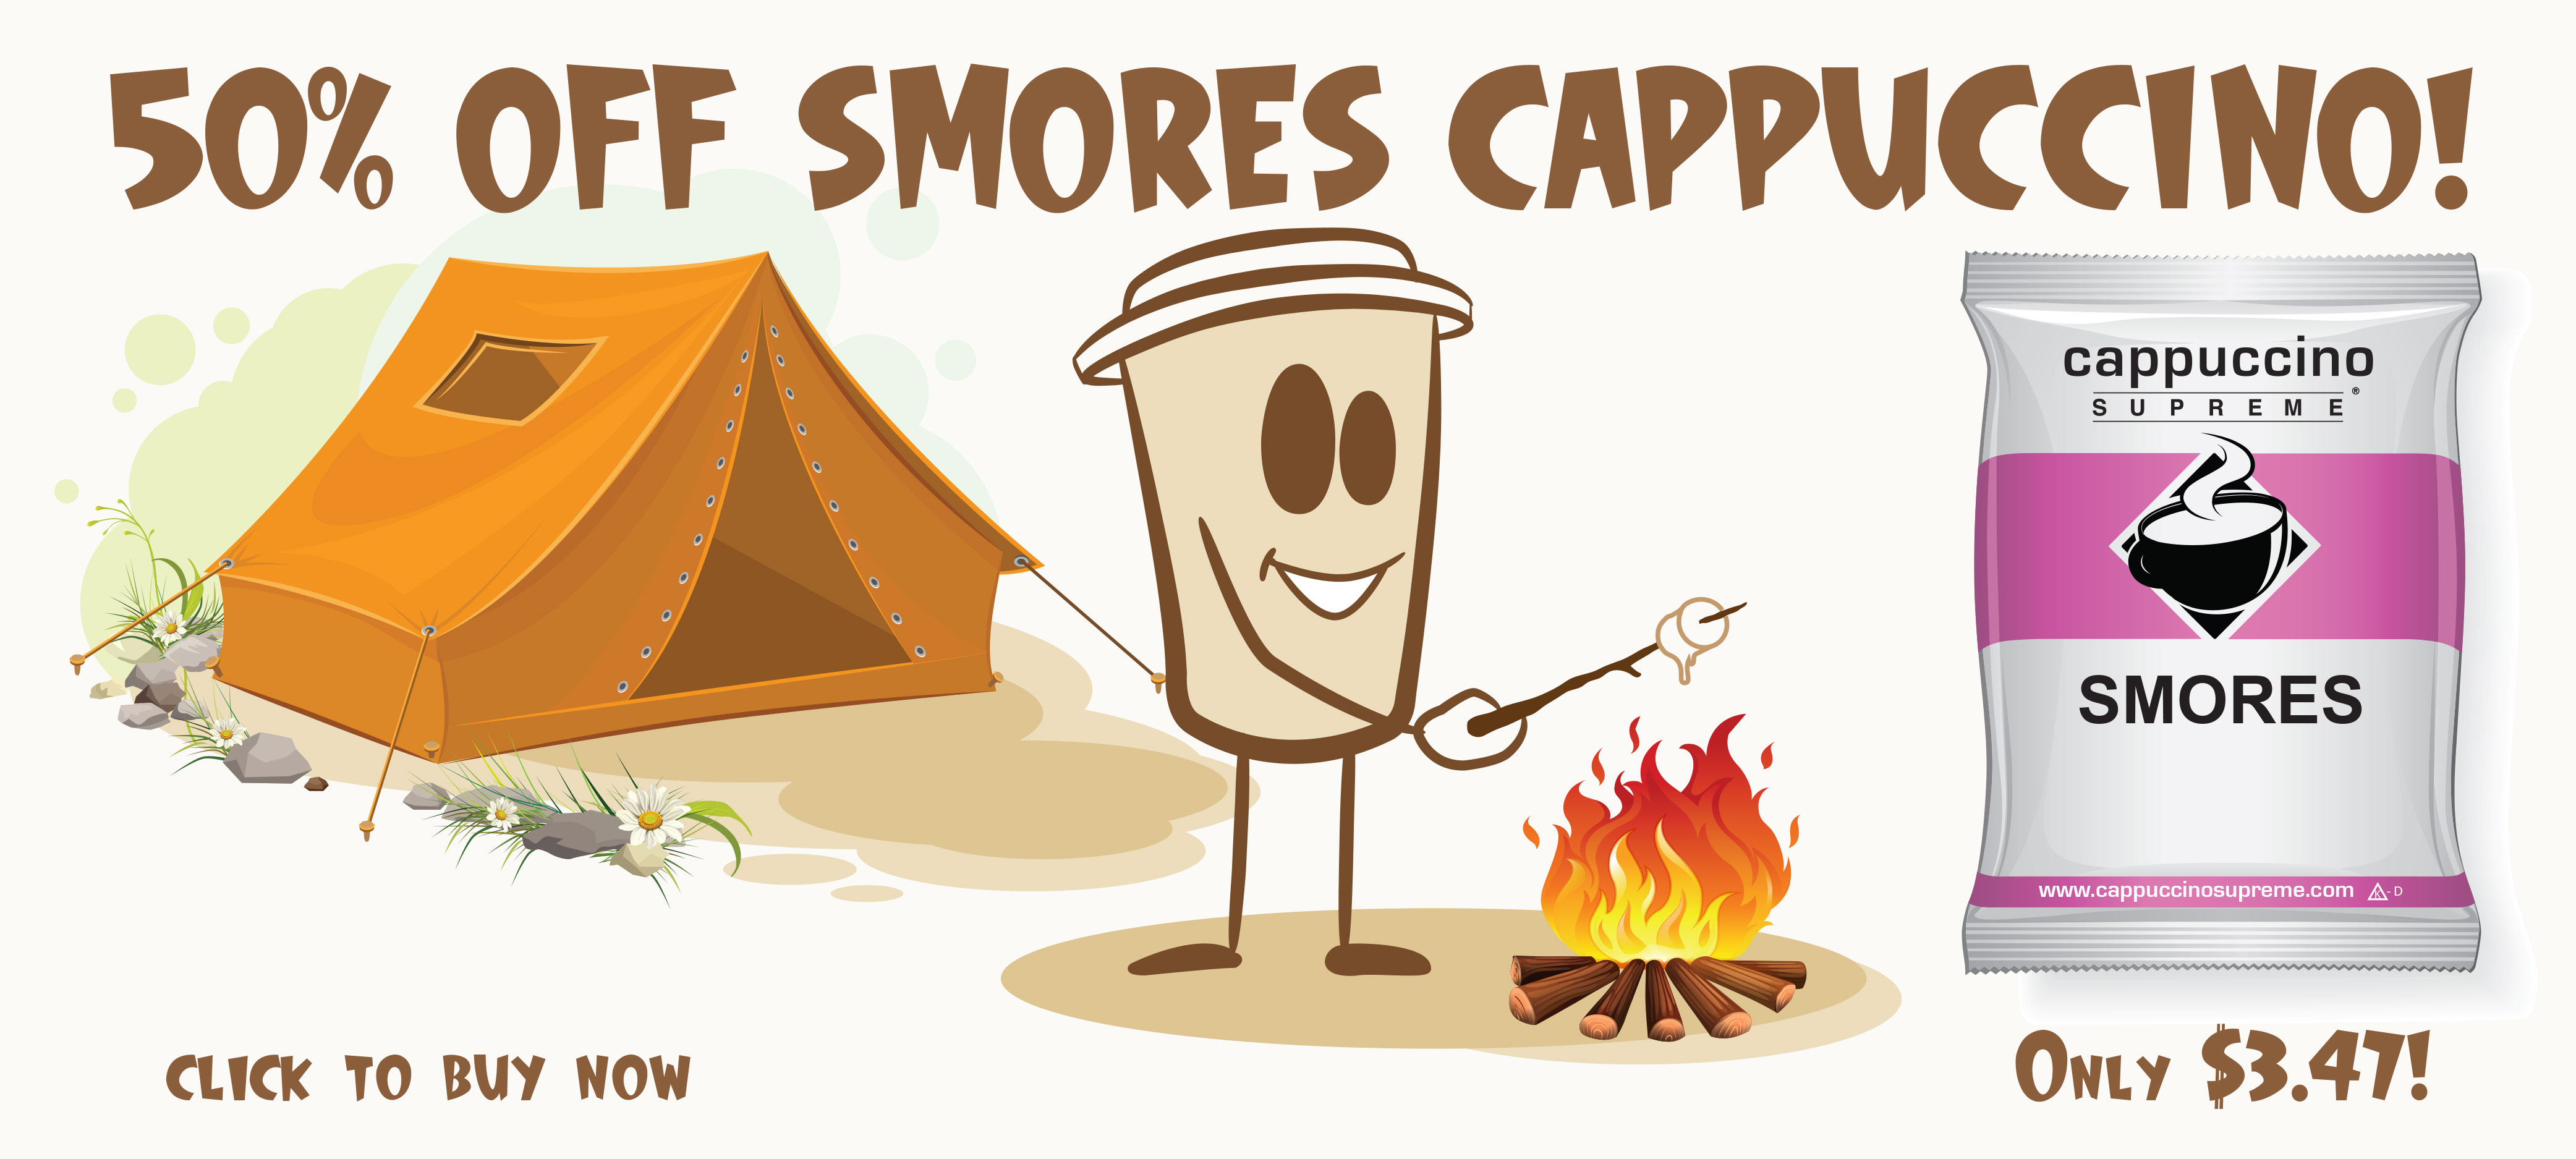 50% Off smores instant cappuccino mix. Only 3.47